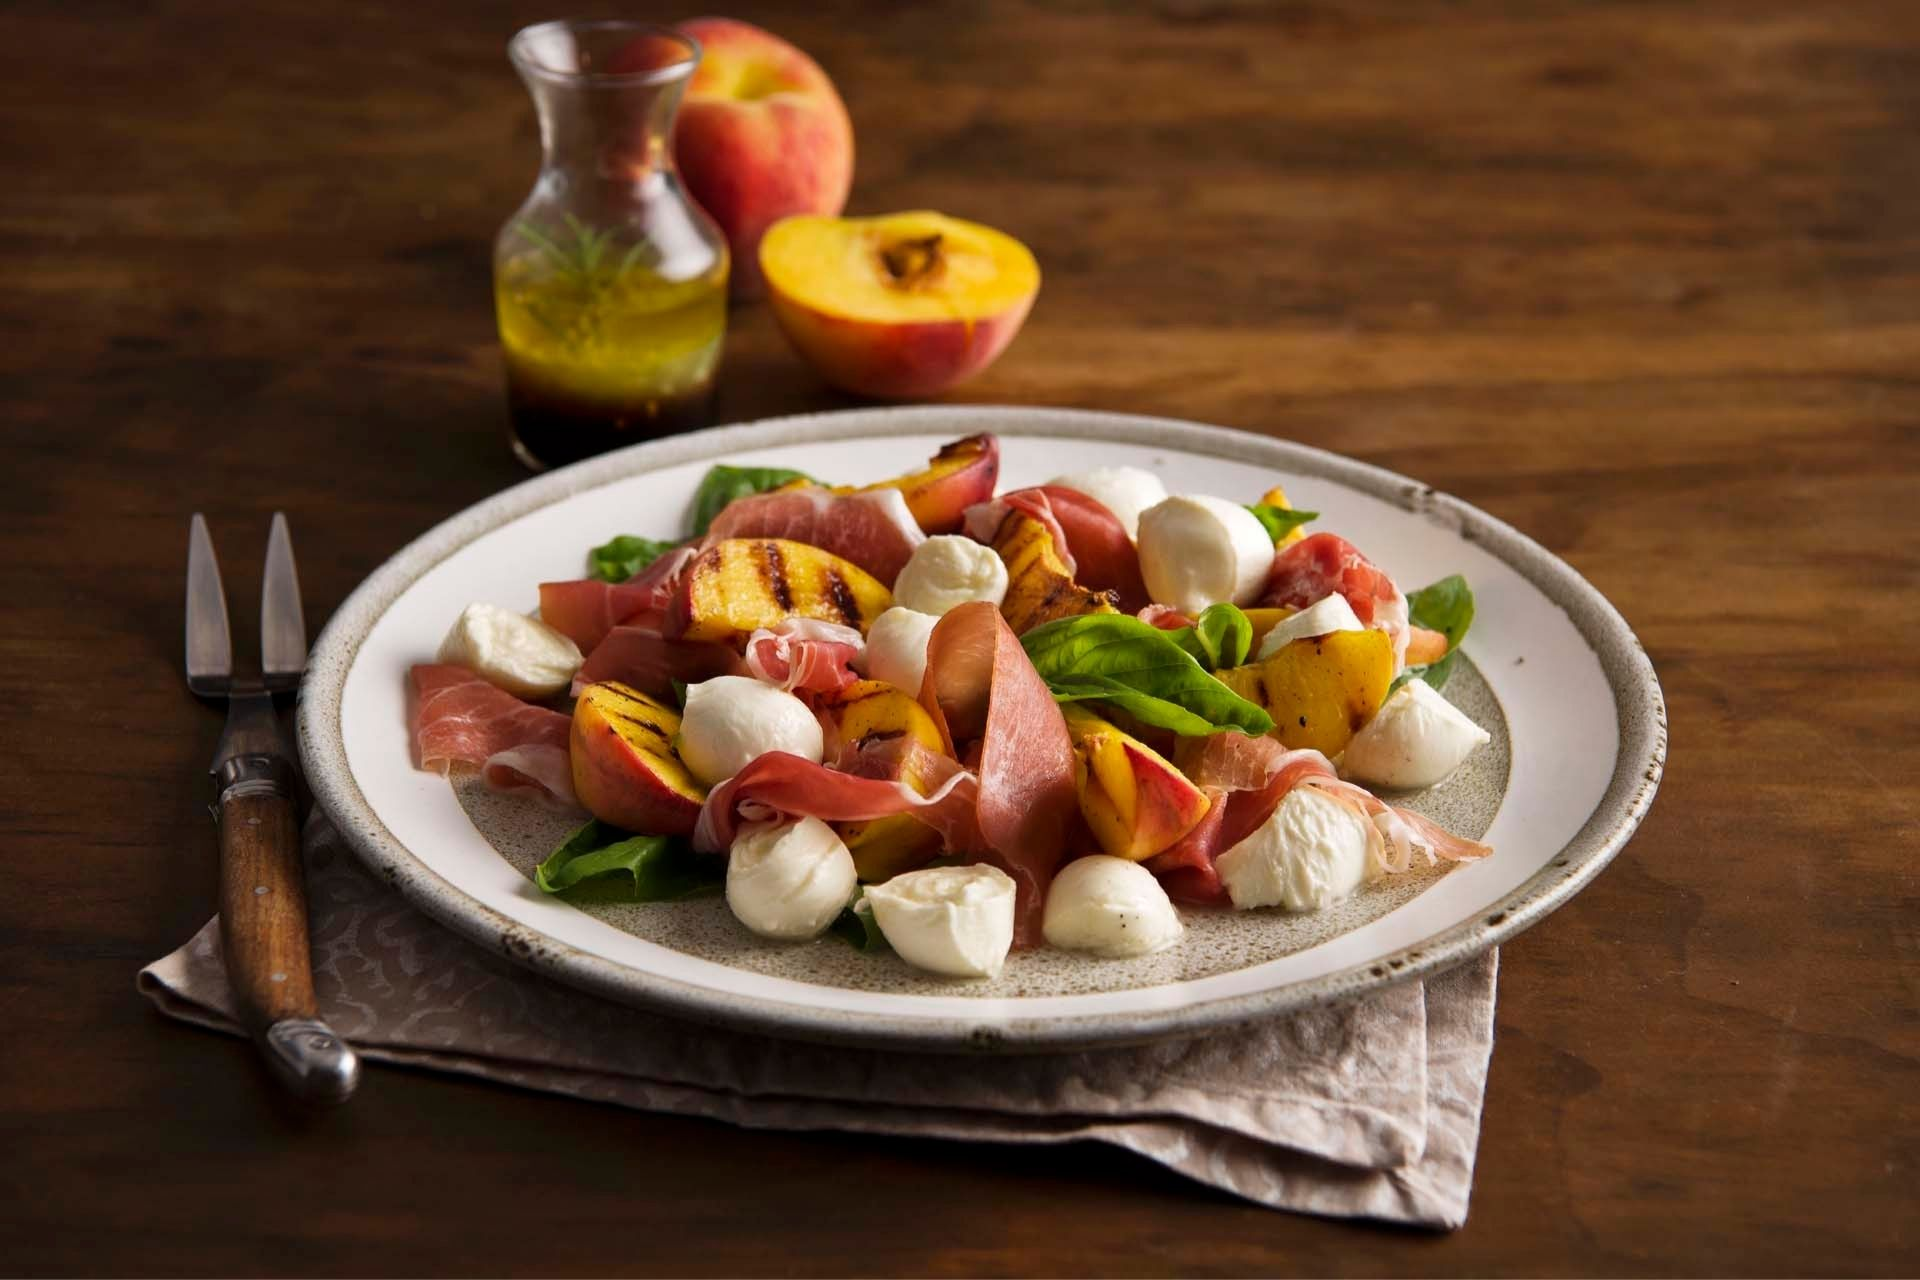 Bocconcini Cheese from Fresco Cheese